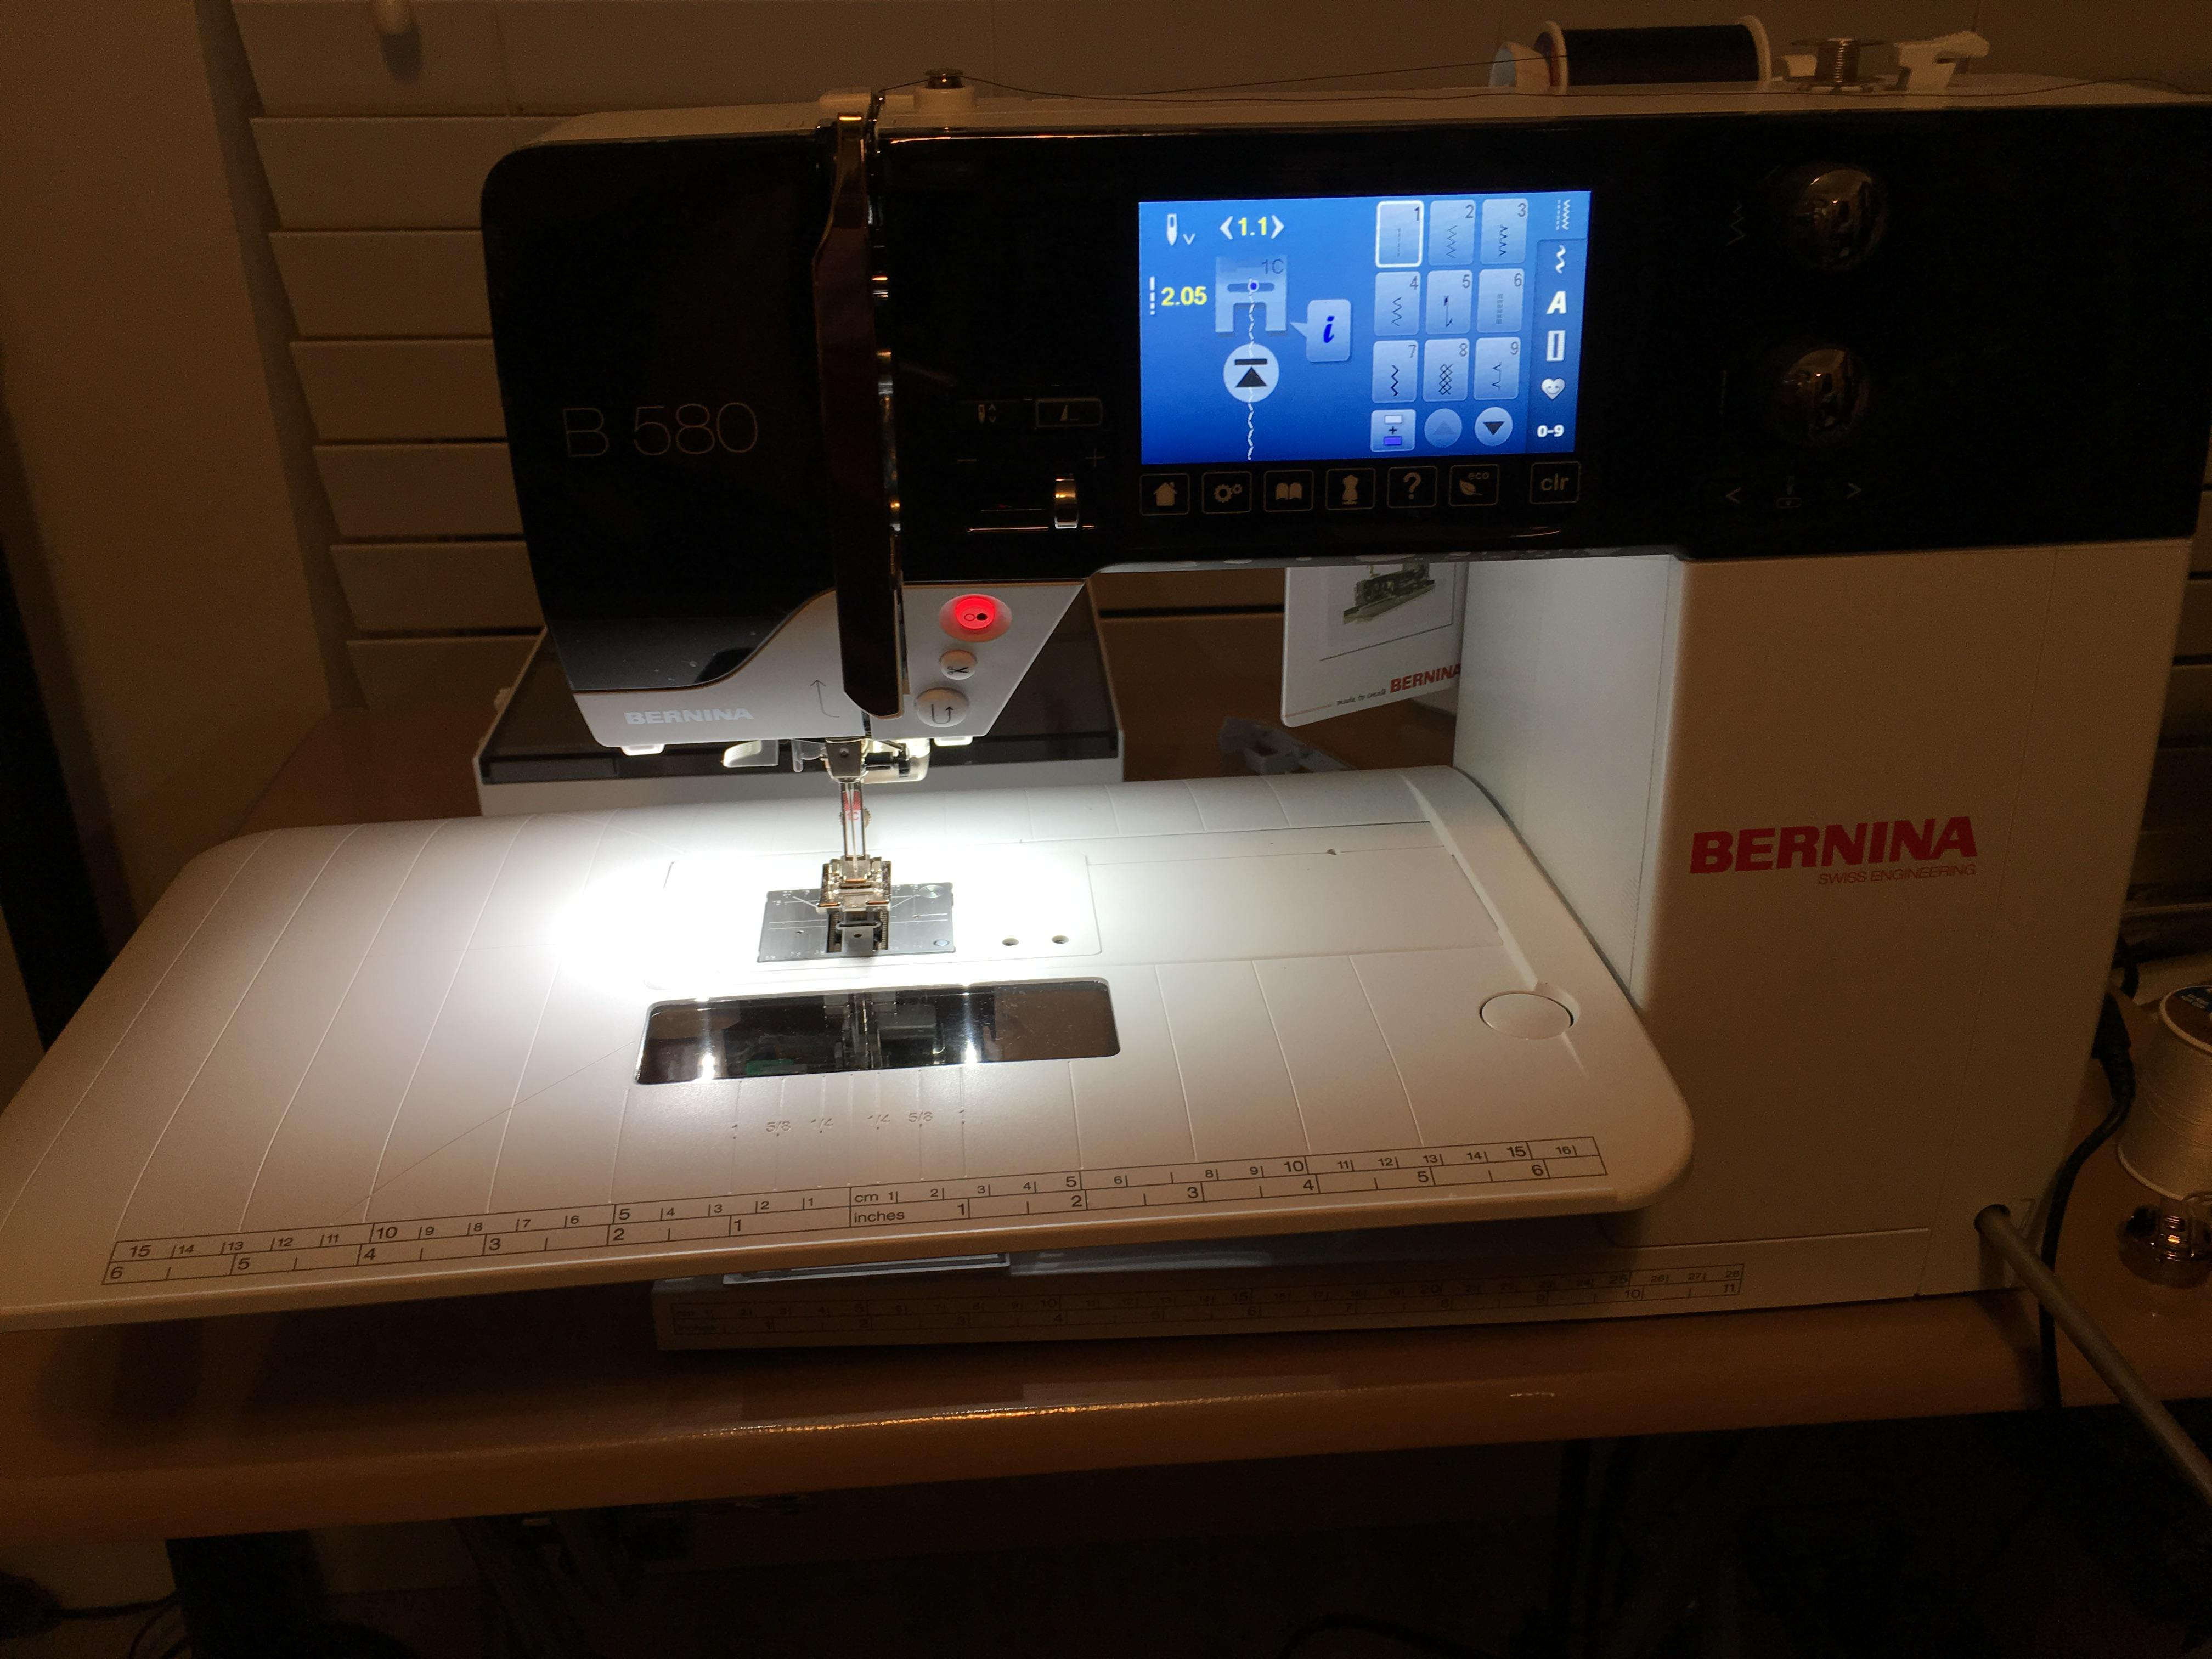 Bernina B 580 | Bernina Sewing and Embroidery Machine